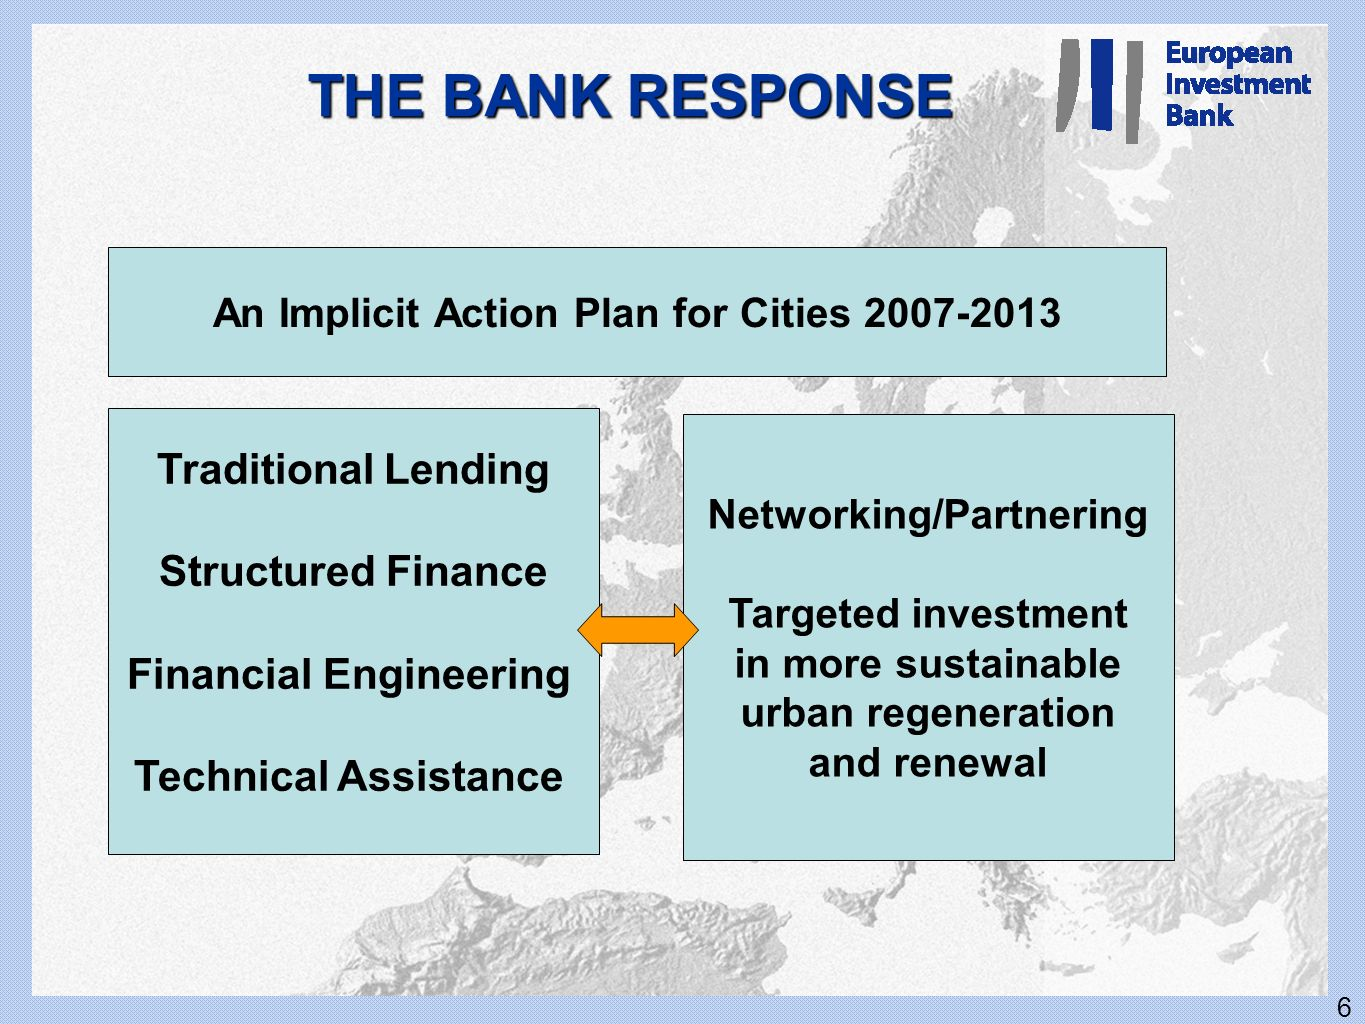 6 THE BANK RESPONSE An Implicit Action Plan for Cities 2007-2013 Traditional Lending Structured Finance Financial Engineering Technical Assistance Net